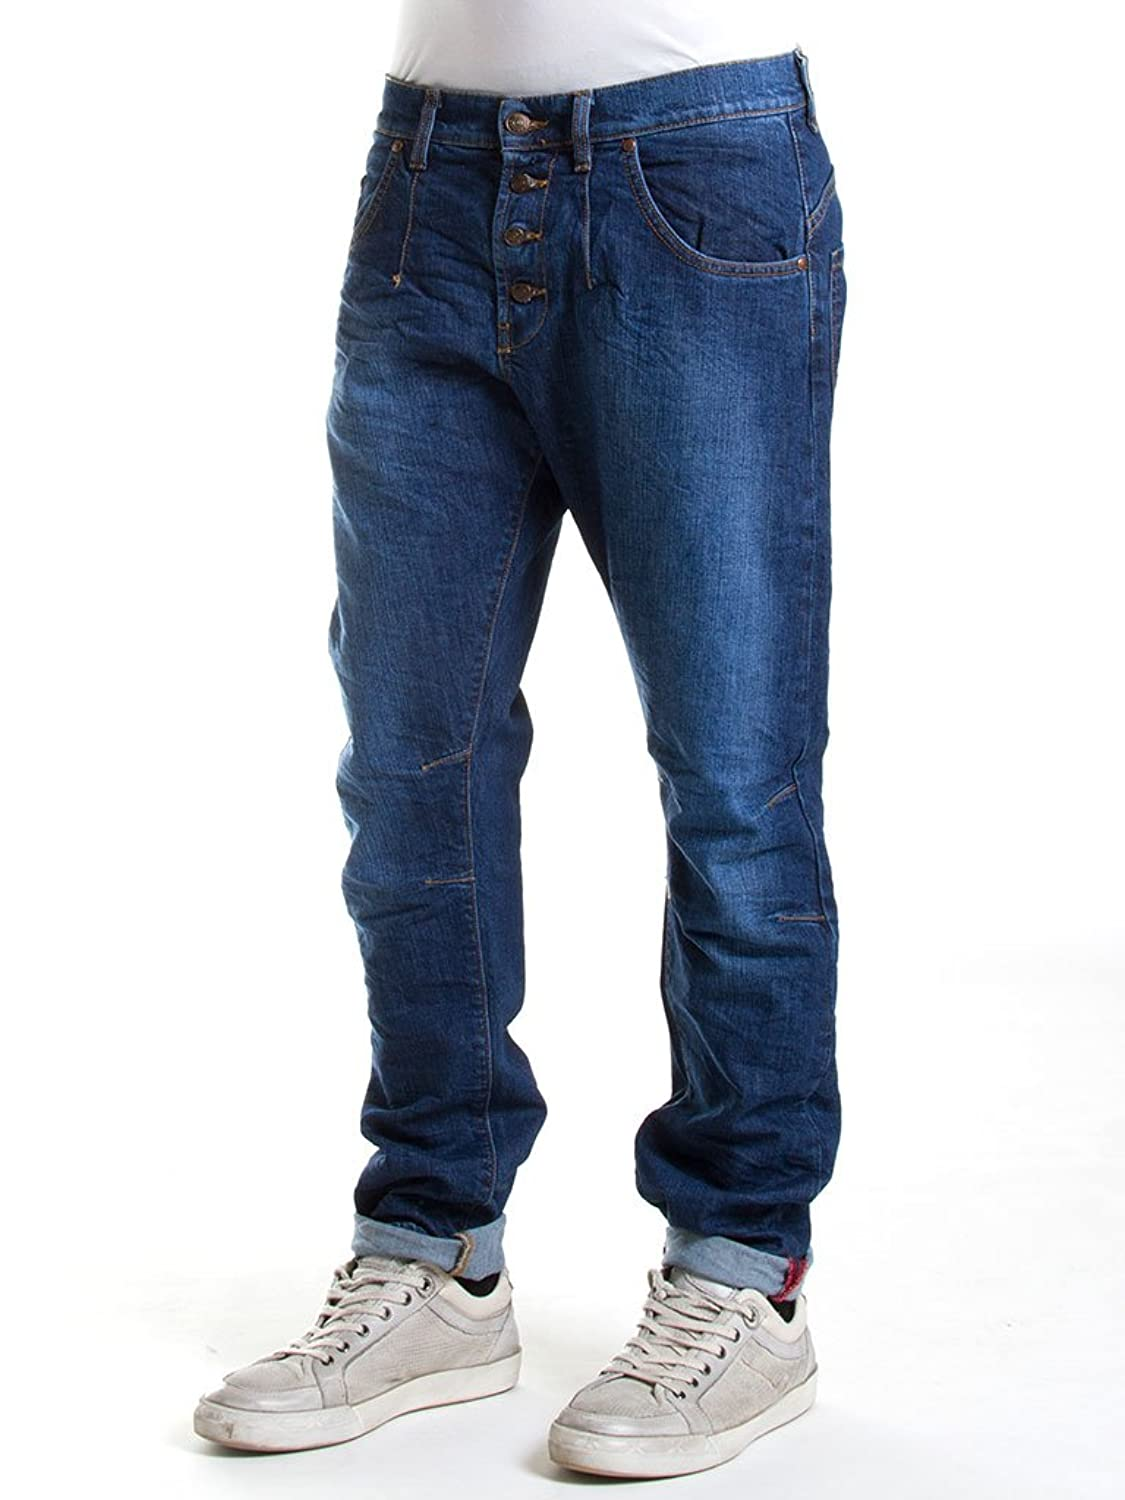 Mens Skinny Jeans Carrera Jeans Browse For Sale Clearance Browse Wiki Sale Online Newest Cheap Price Clearance Affordable s3Va4Mj